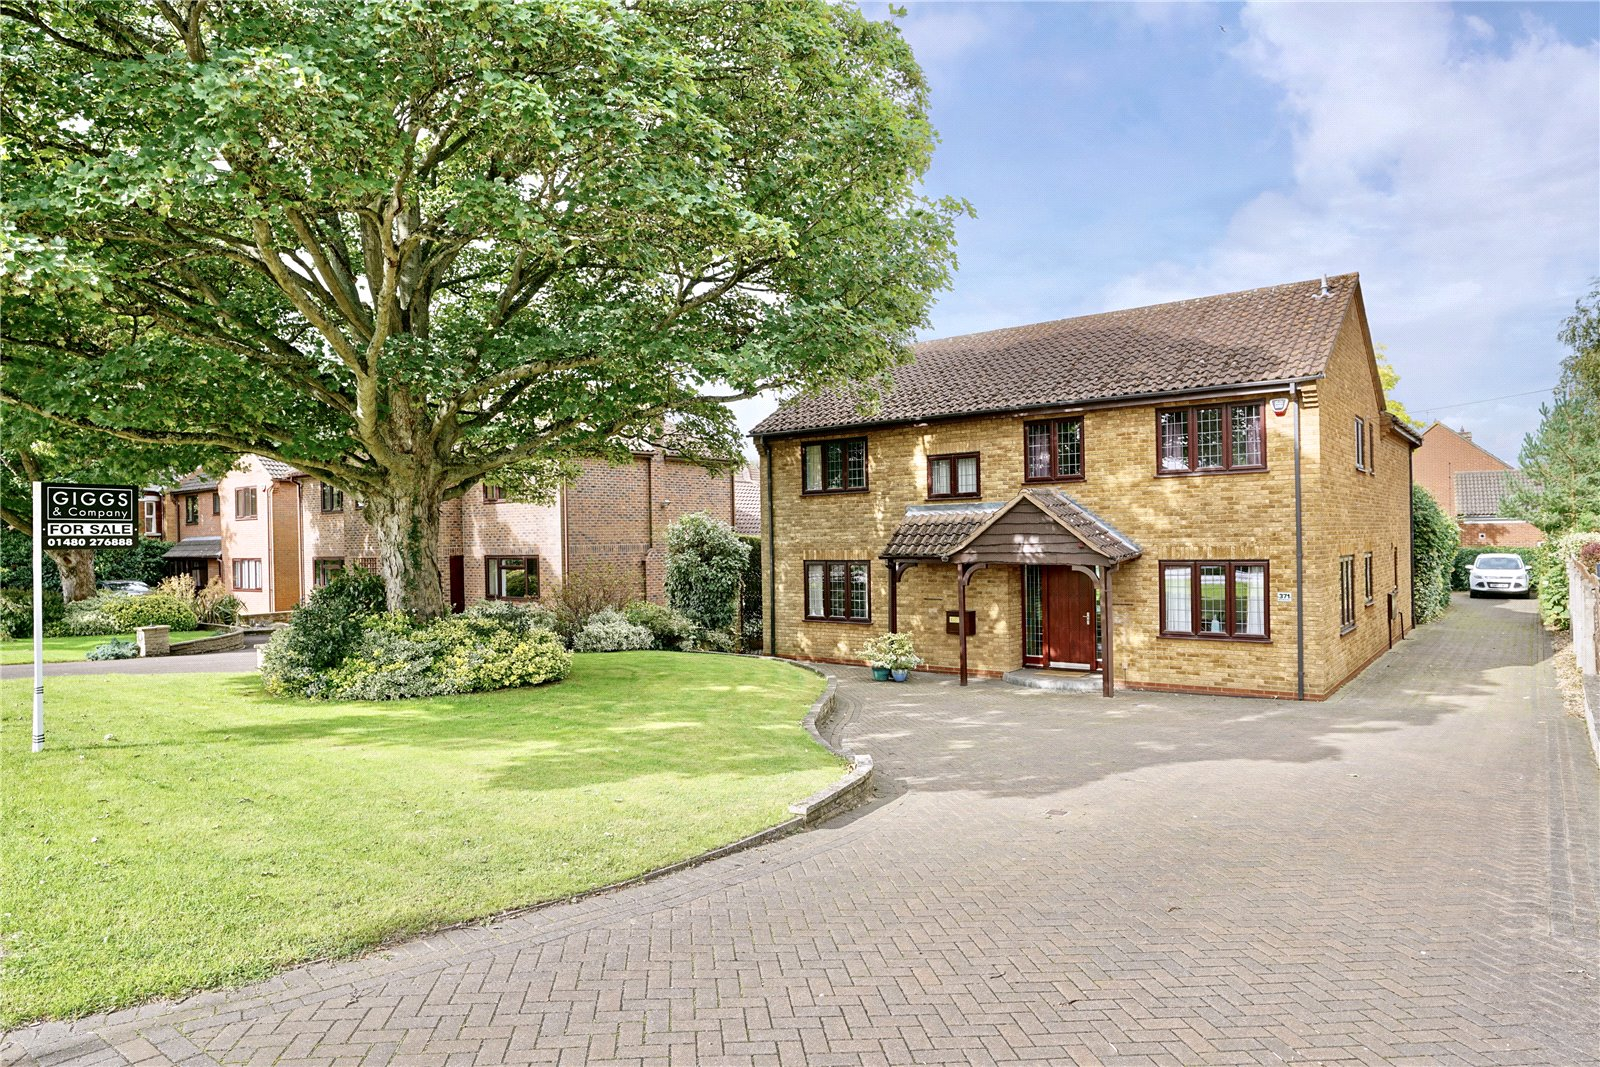 5 bed house for sale in Great North Road, Eaton Ford 0